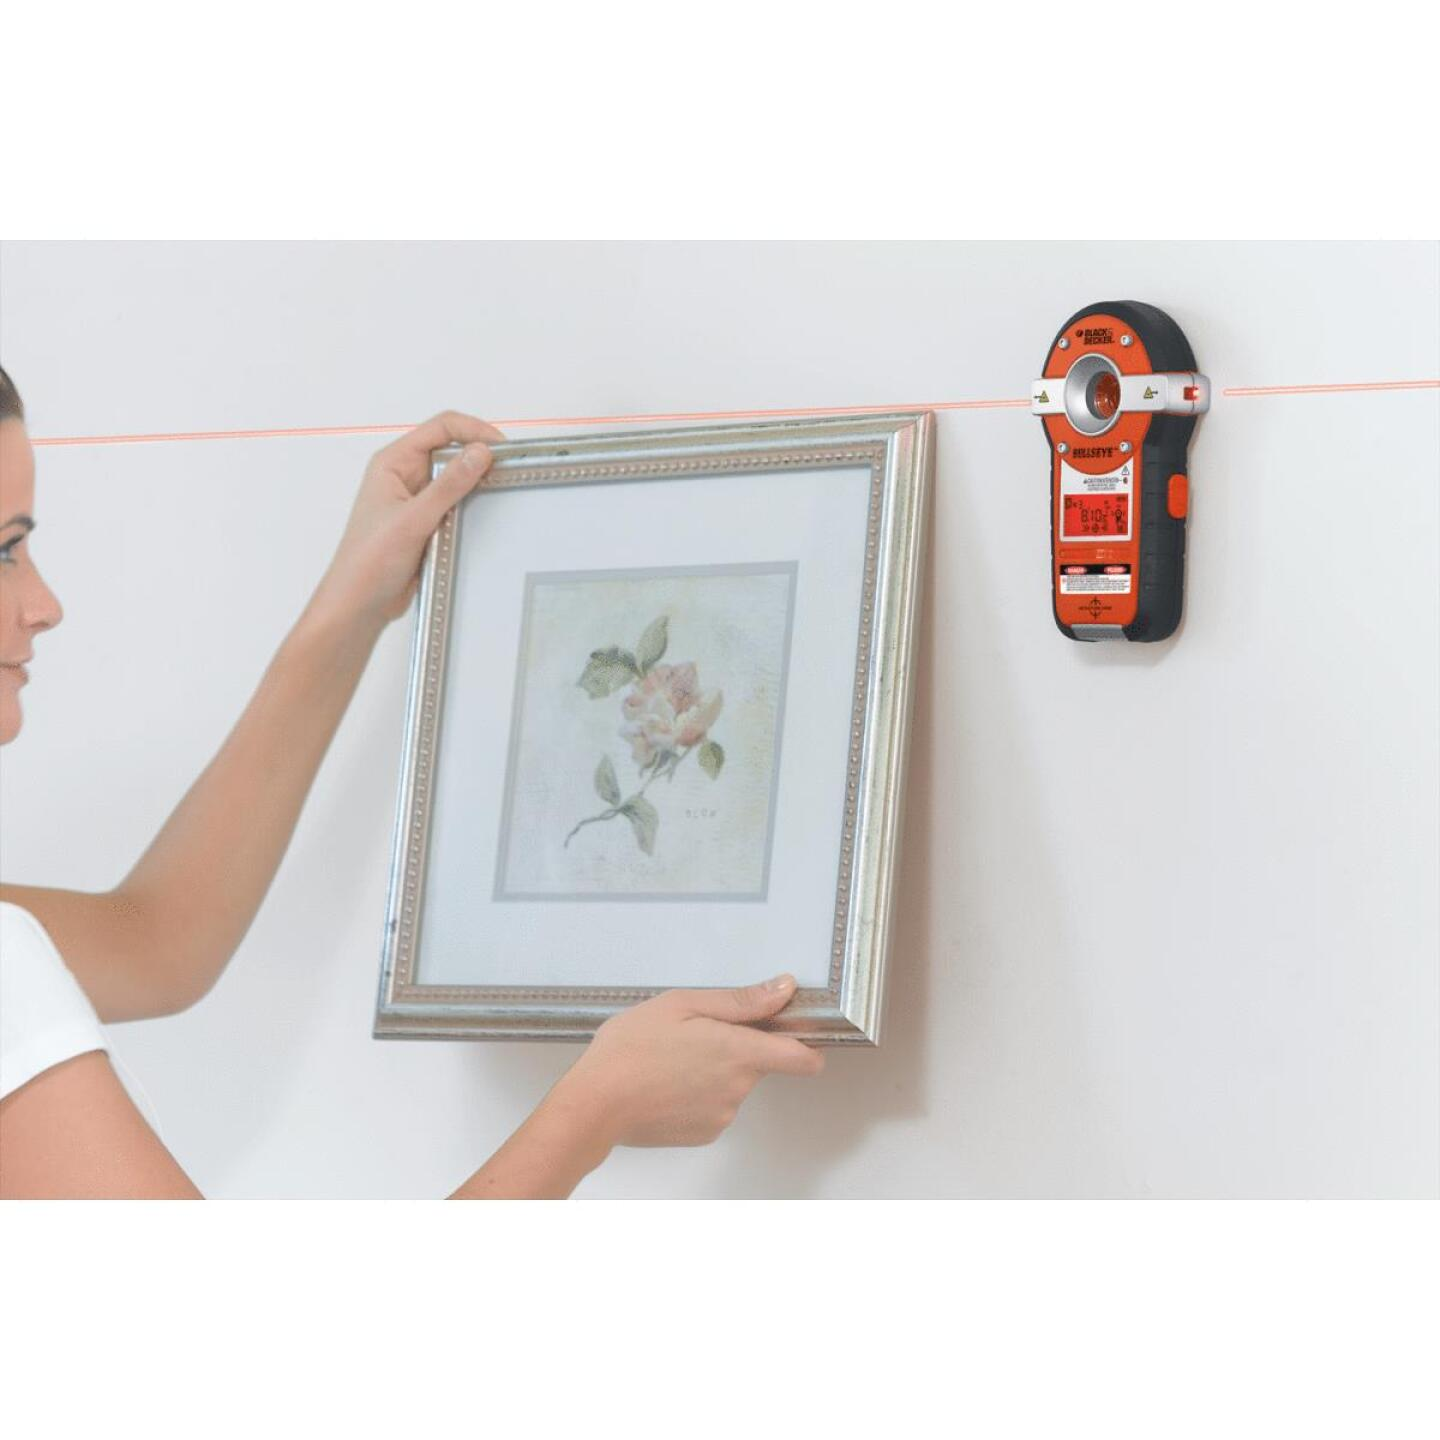 Black & Decker Bullseye 20 Ft. Self-Leveling Line Laser Level with Stud Sensor Image 3